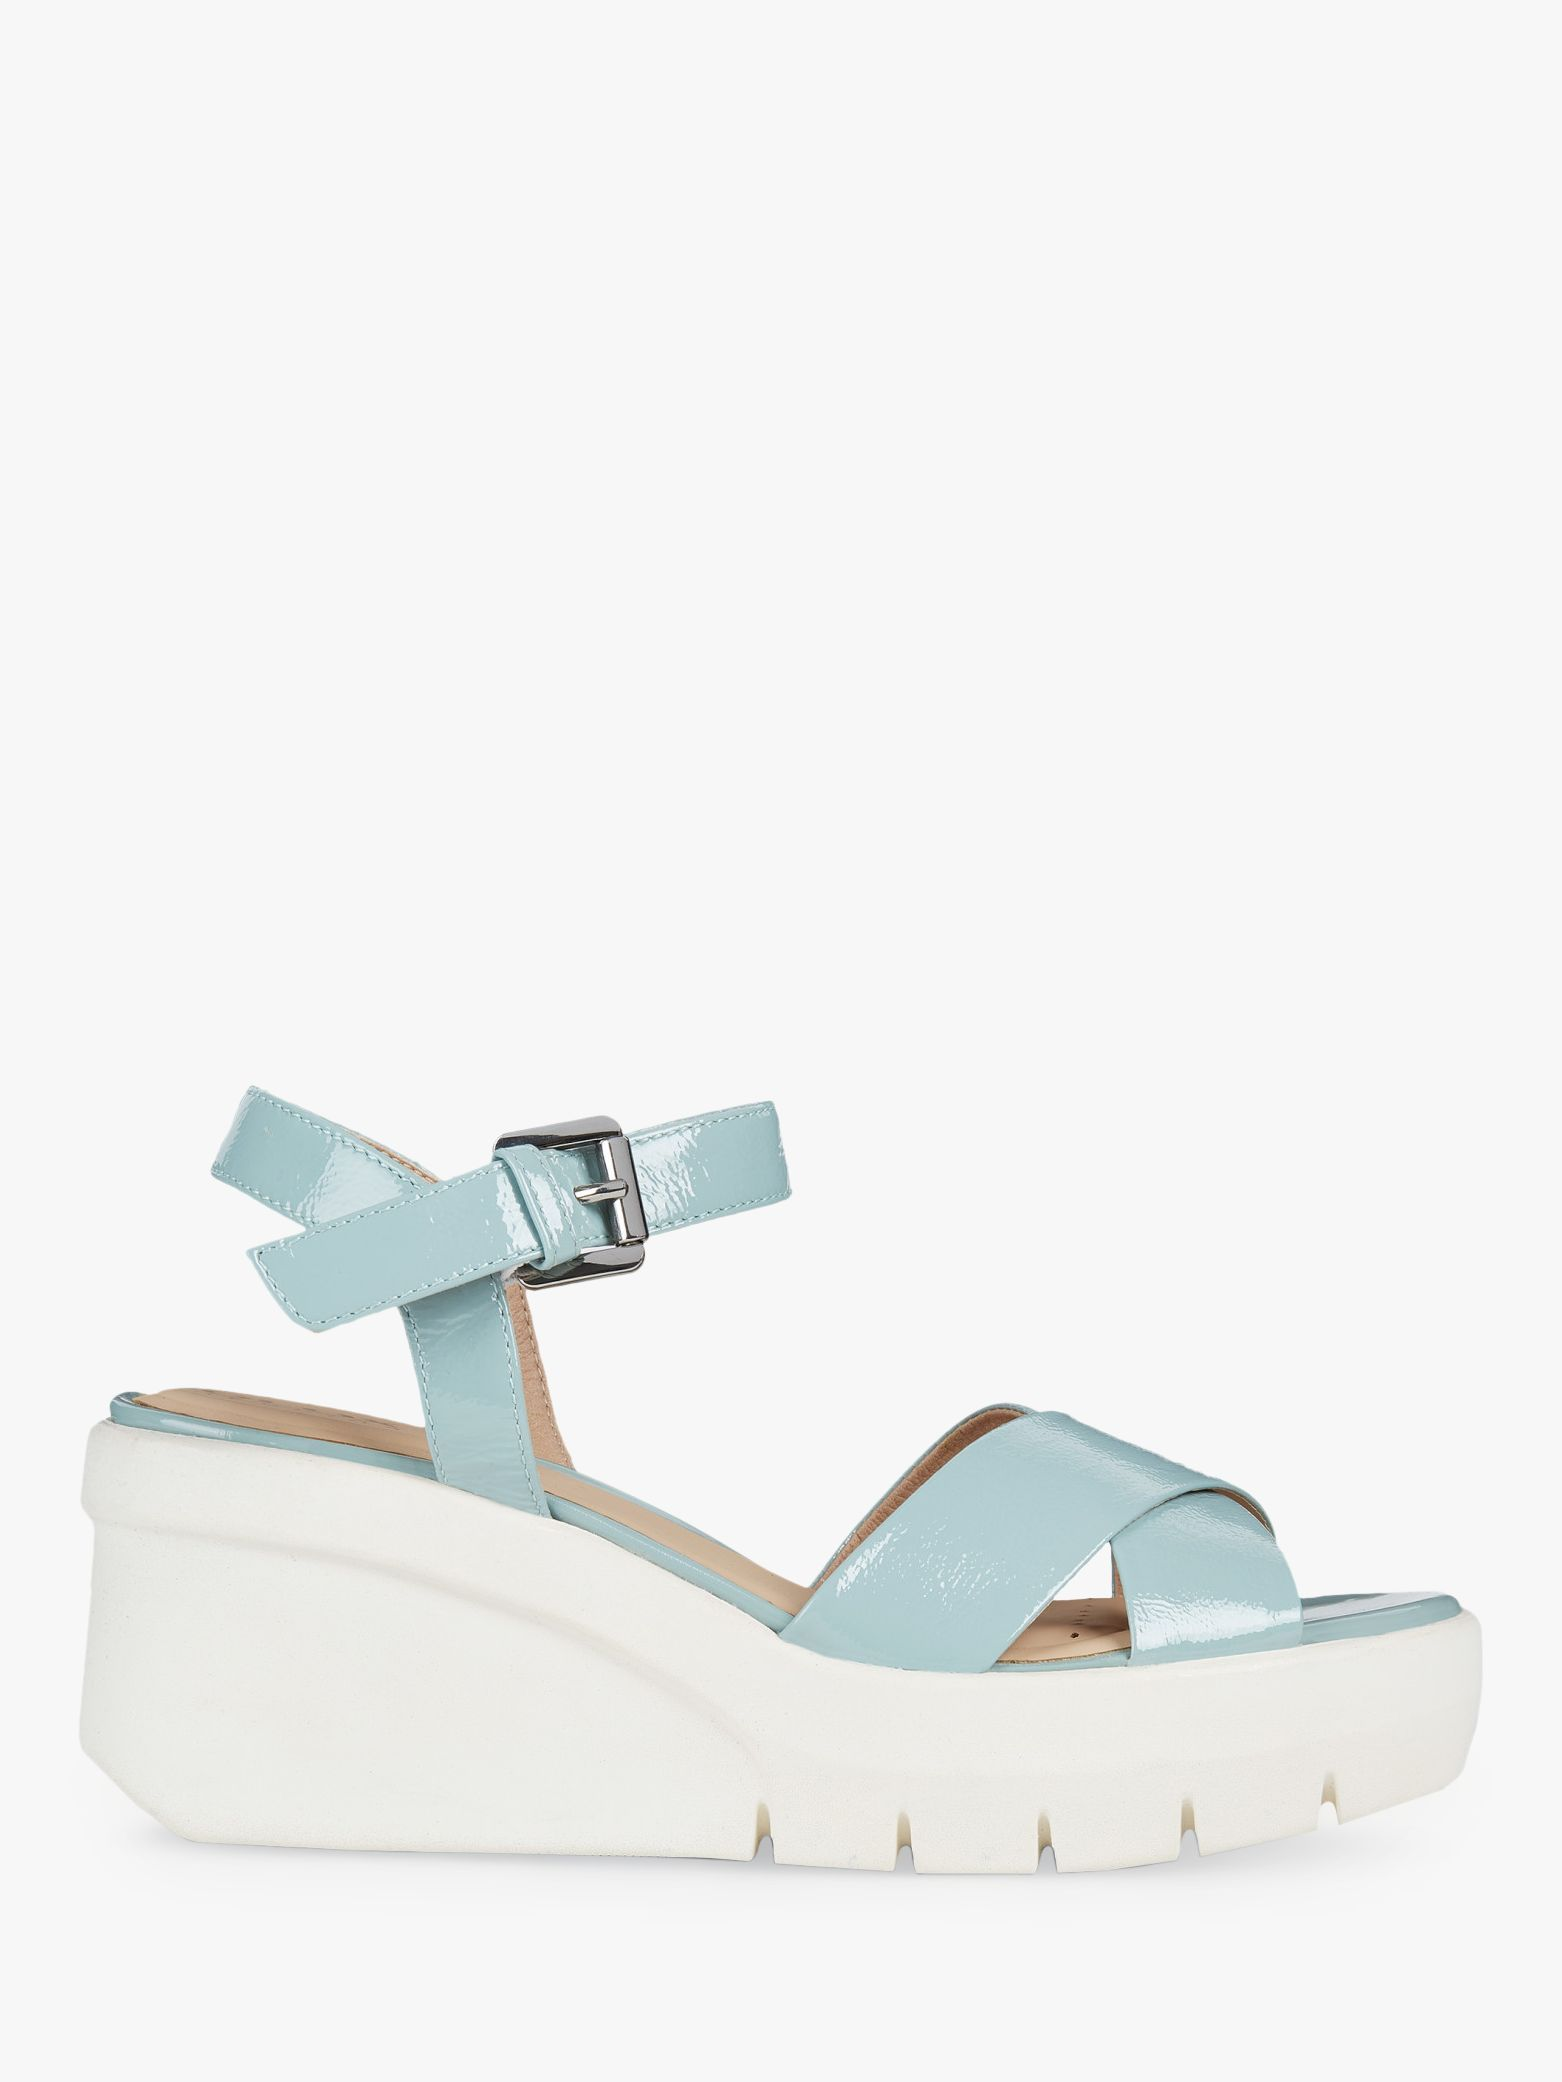 Geox Women's Torrence Flatform Sandals, Light Green